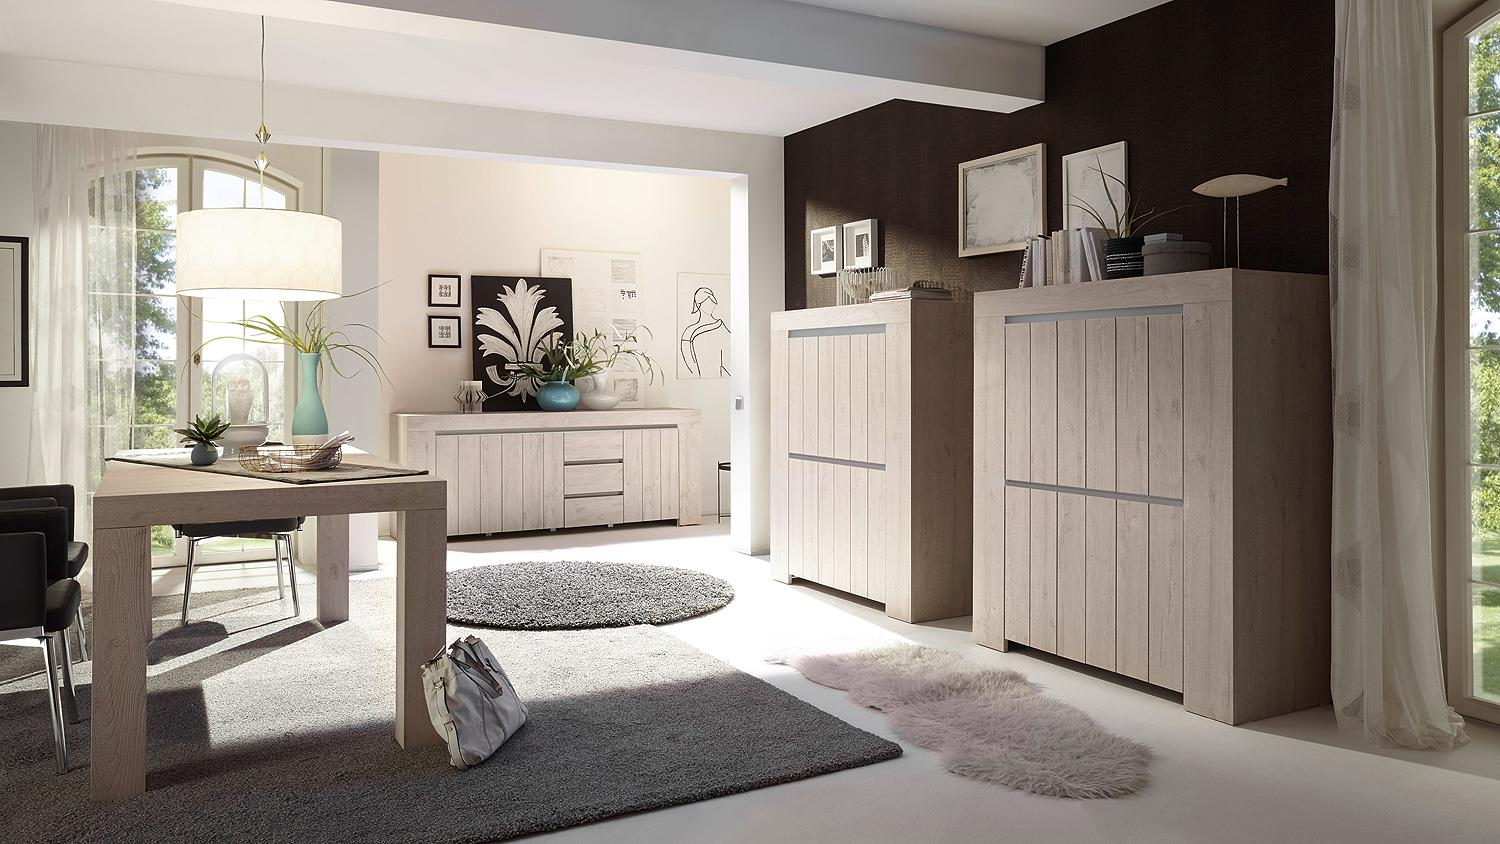 sideboard palmira kommode anrichte in eiche hell und beige matt. Black Bedroom Furniture Sets. Home Design Ideas